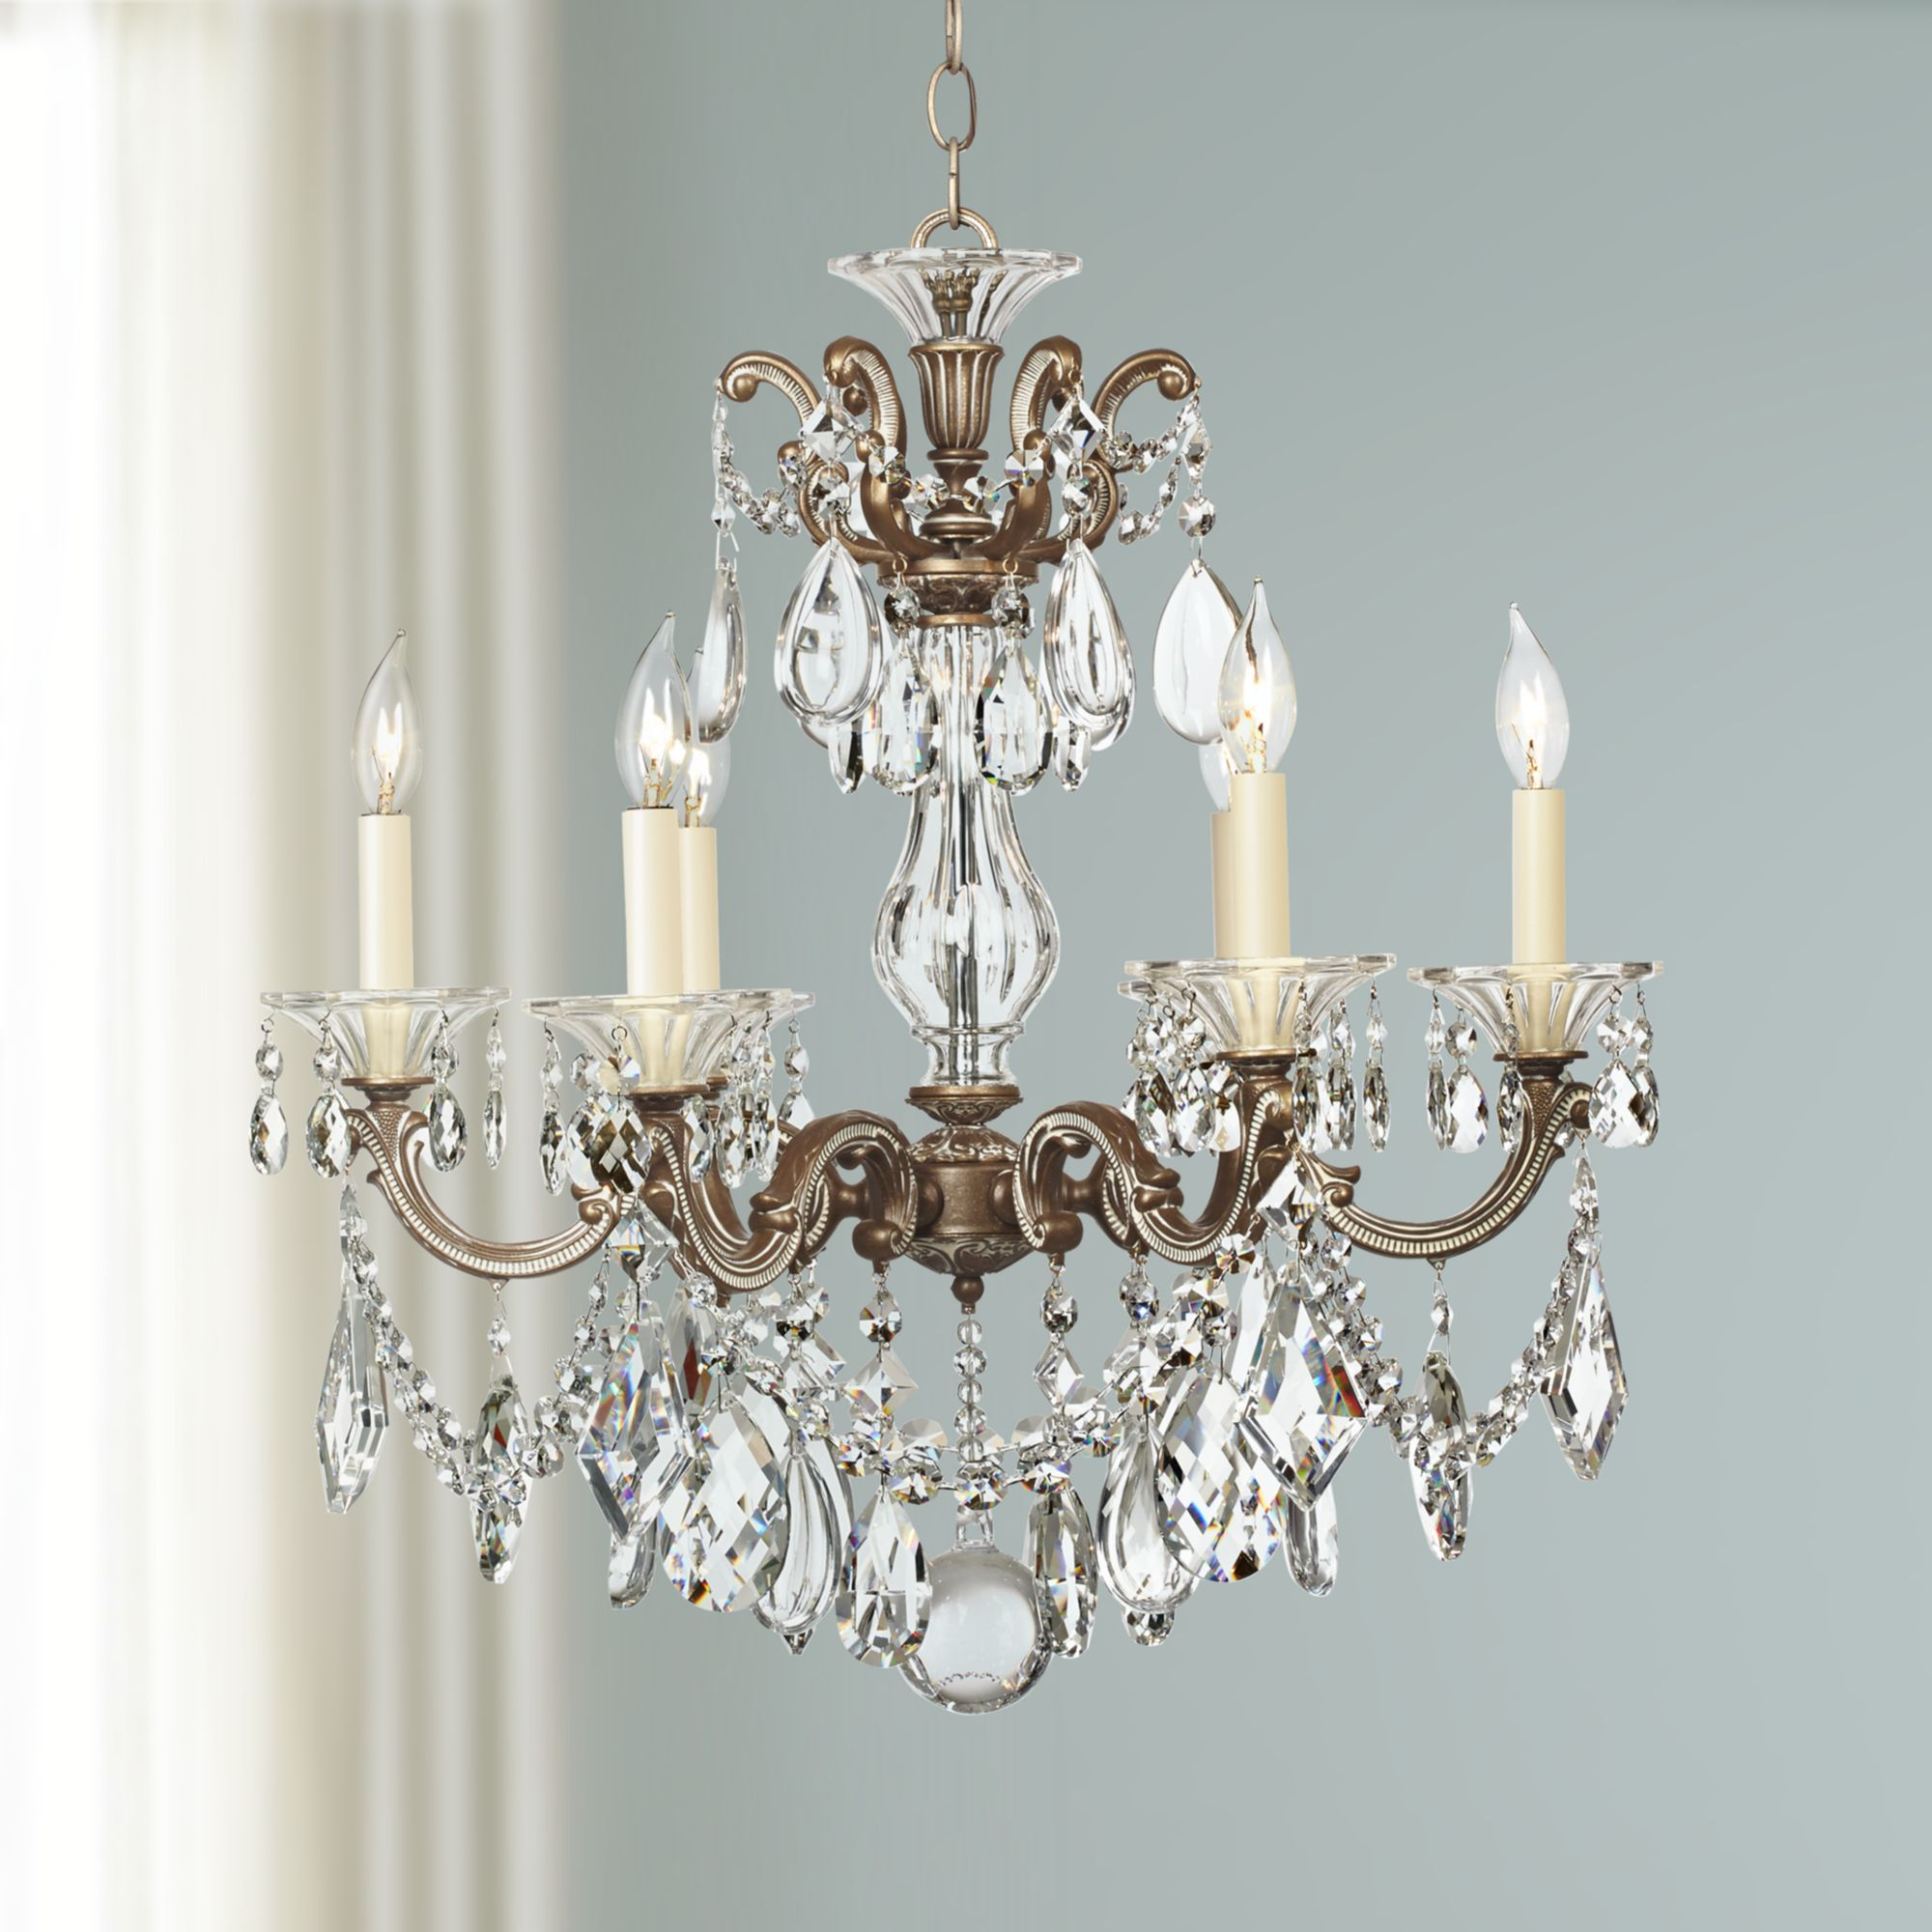 Schonbek La Scala Six Light Crystal Chandelier by Schonbek